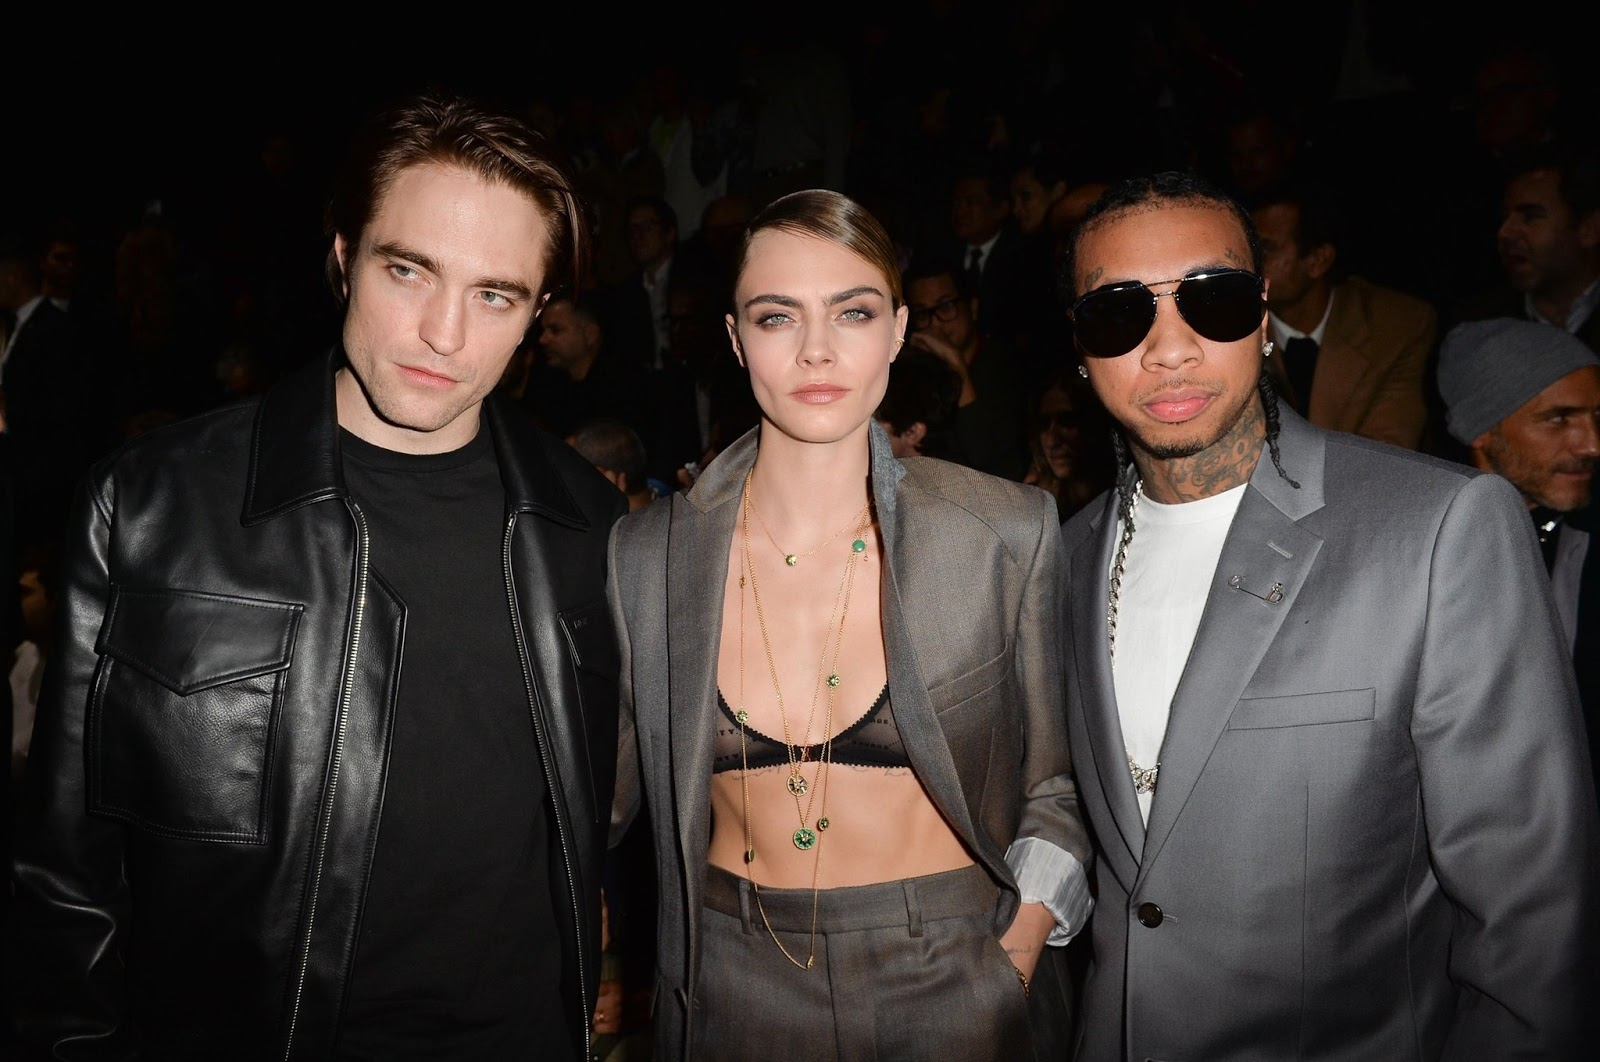 Robert Pattinson, Tyga and Cara Delevingne at the Dior Homme Menswear Fall Winter 2020